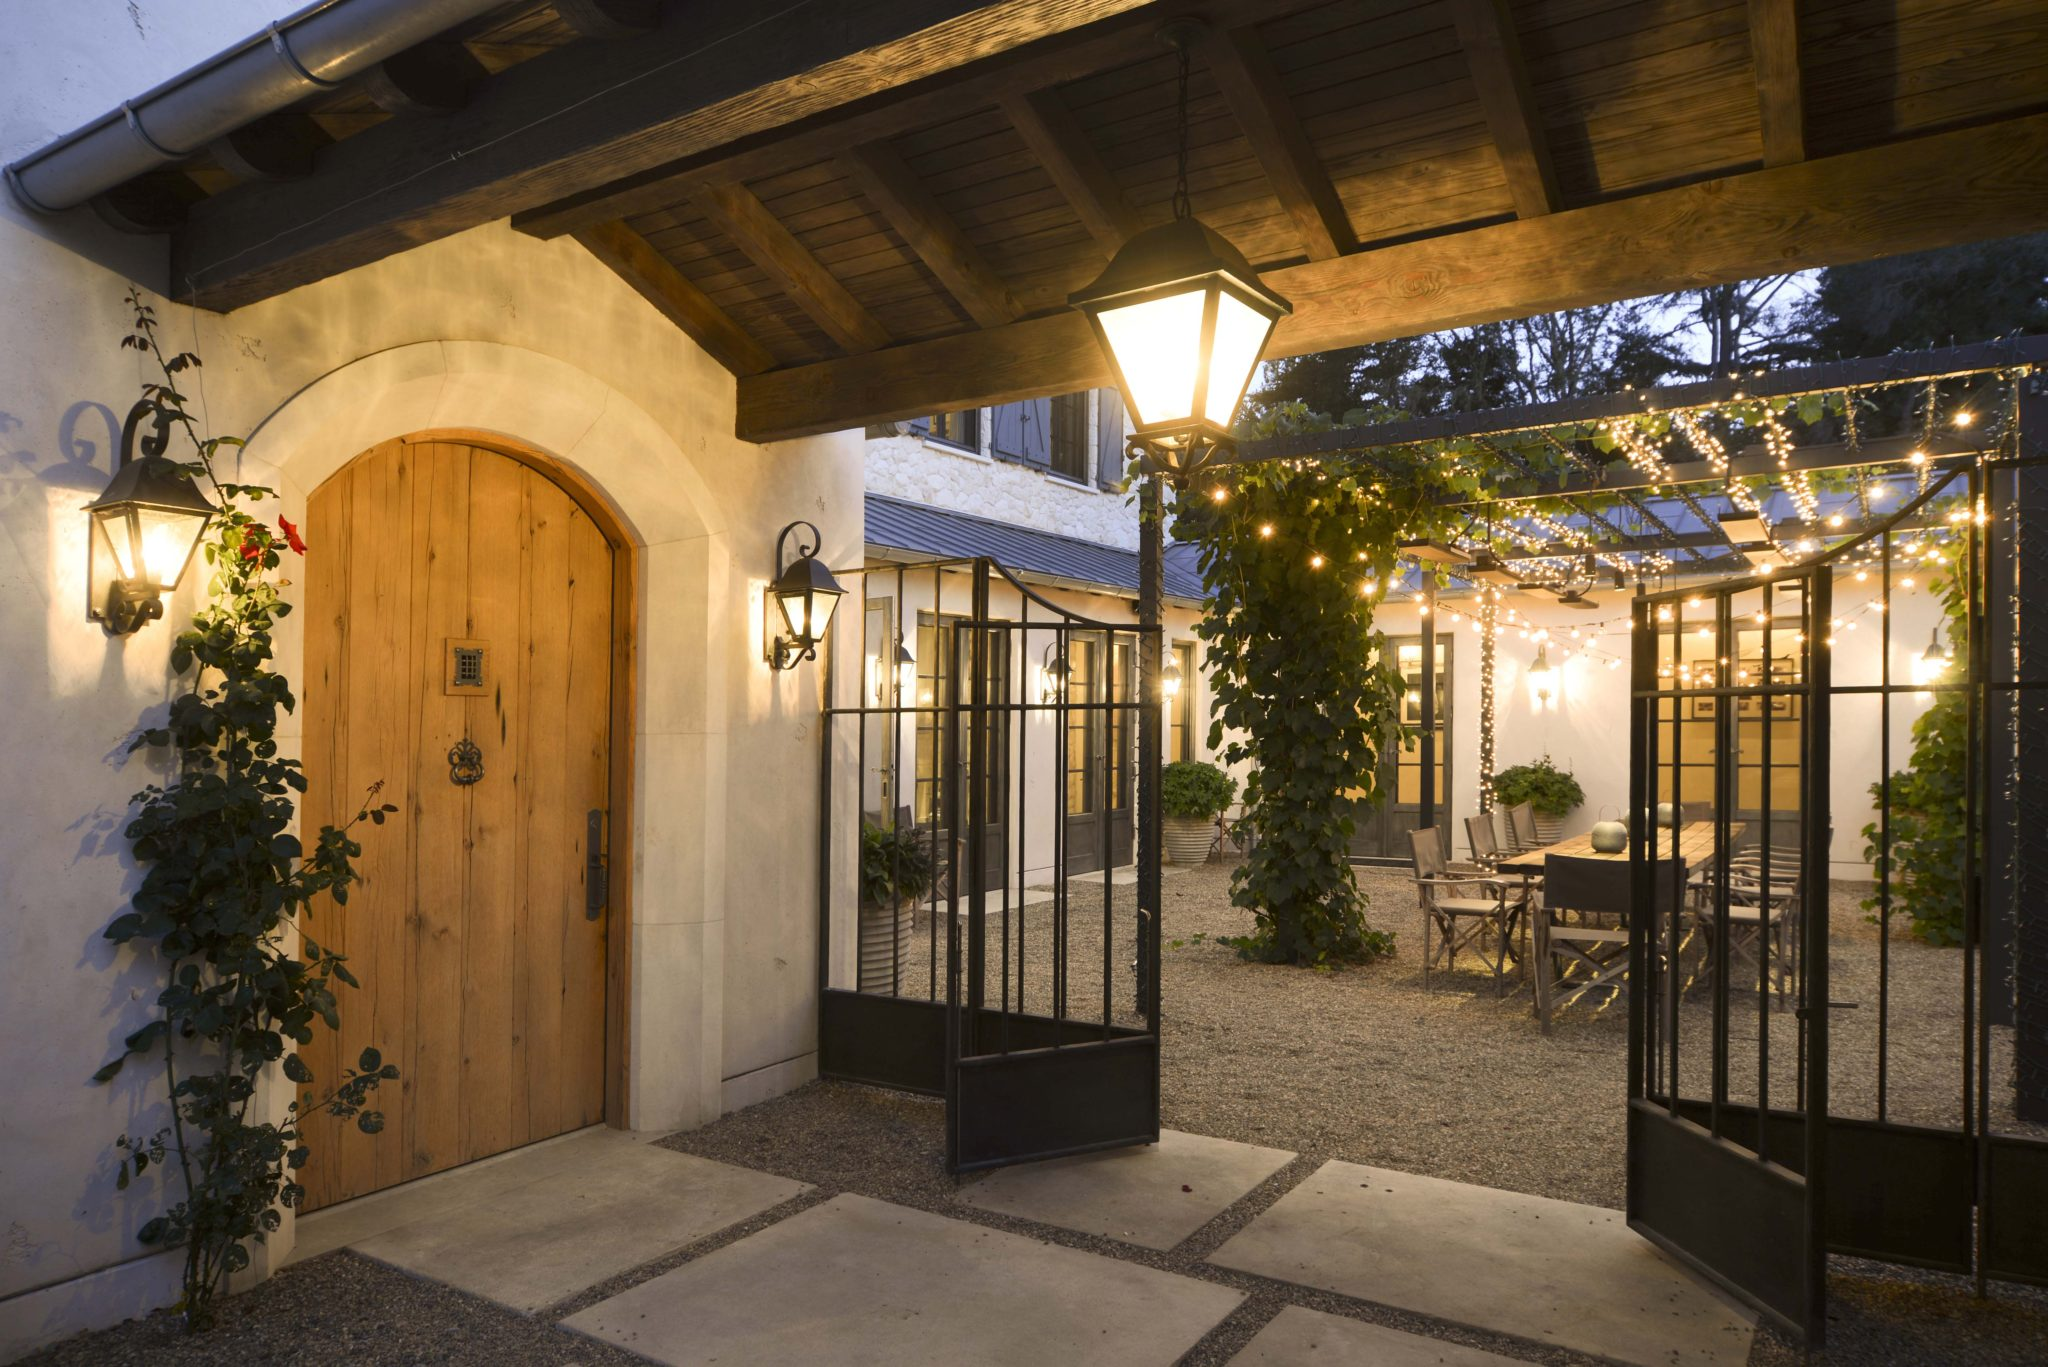 French stone residence entryway, dining courtyard with lights and vine trellis by Fergus Garber Young Architects